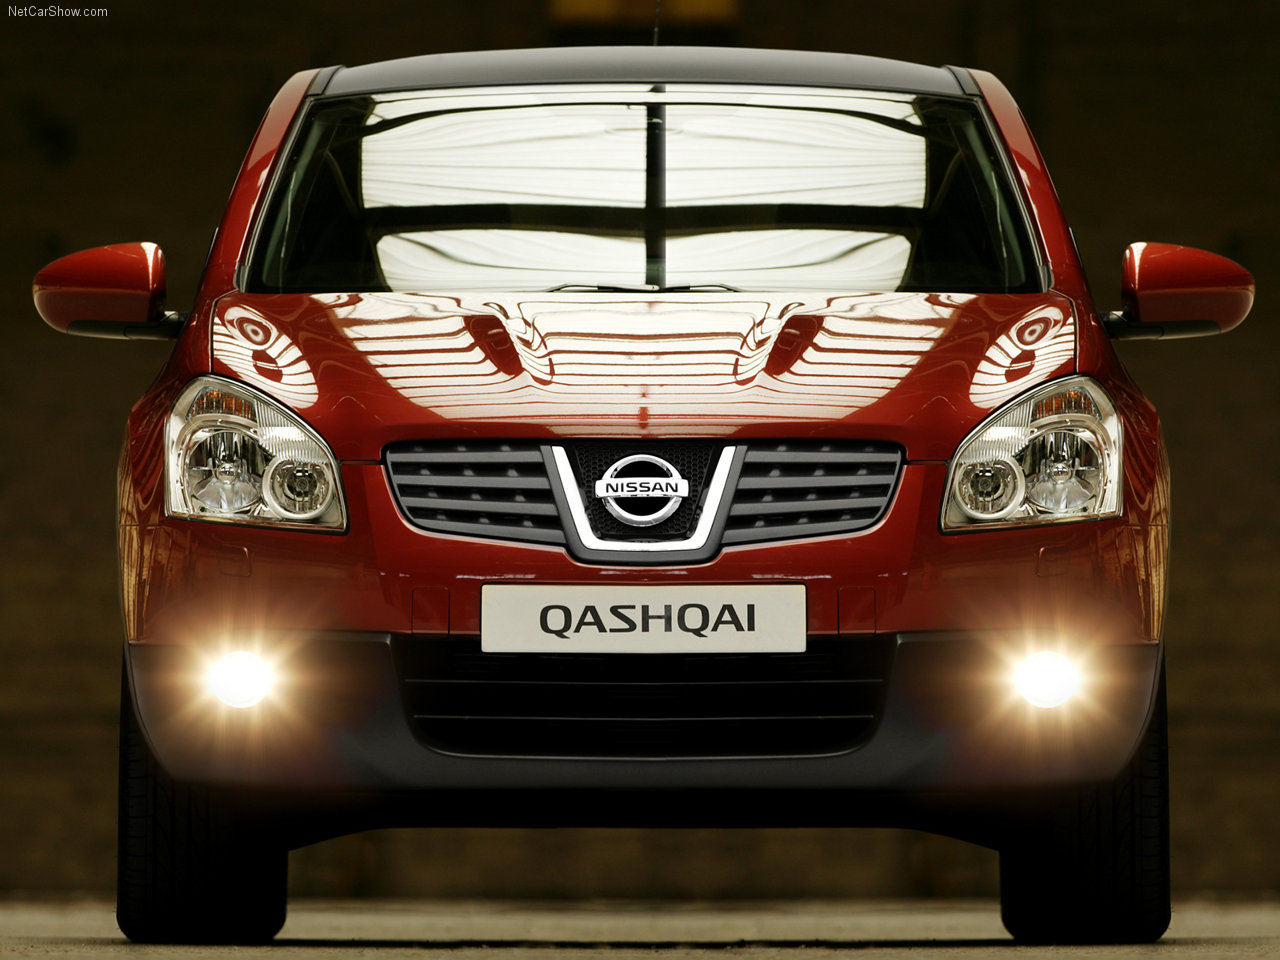 nissan qashqai a k a nissan dualis model j10 series. Black Bedroom Furniture Sets. Home Design Ideas